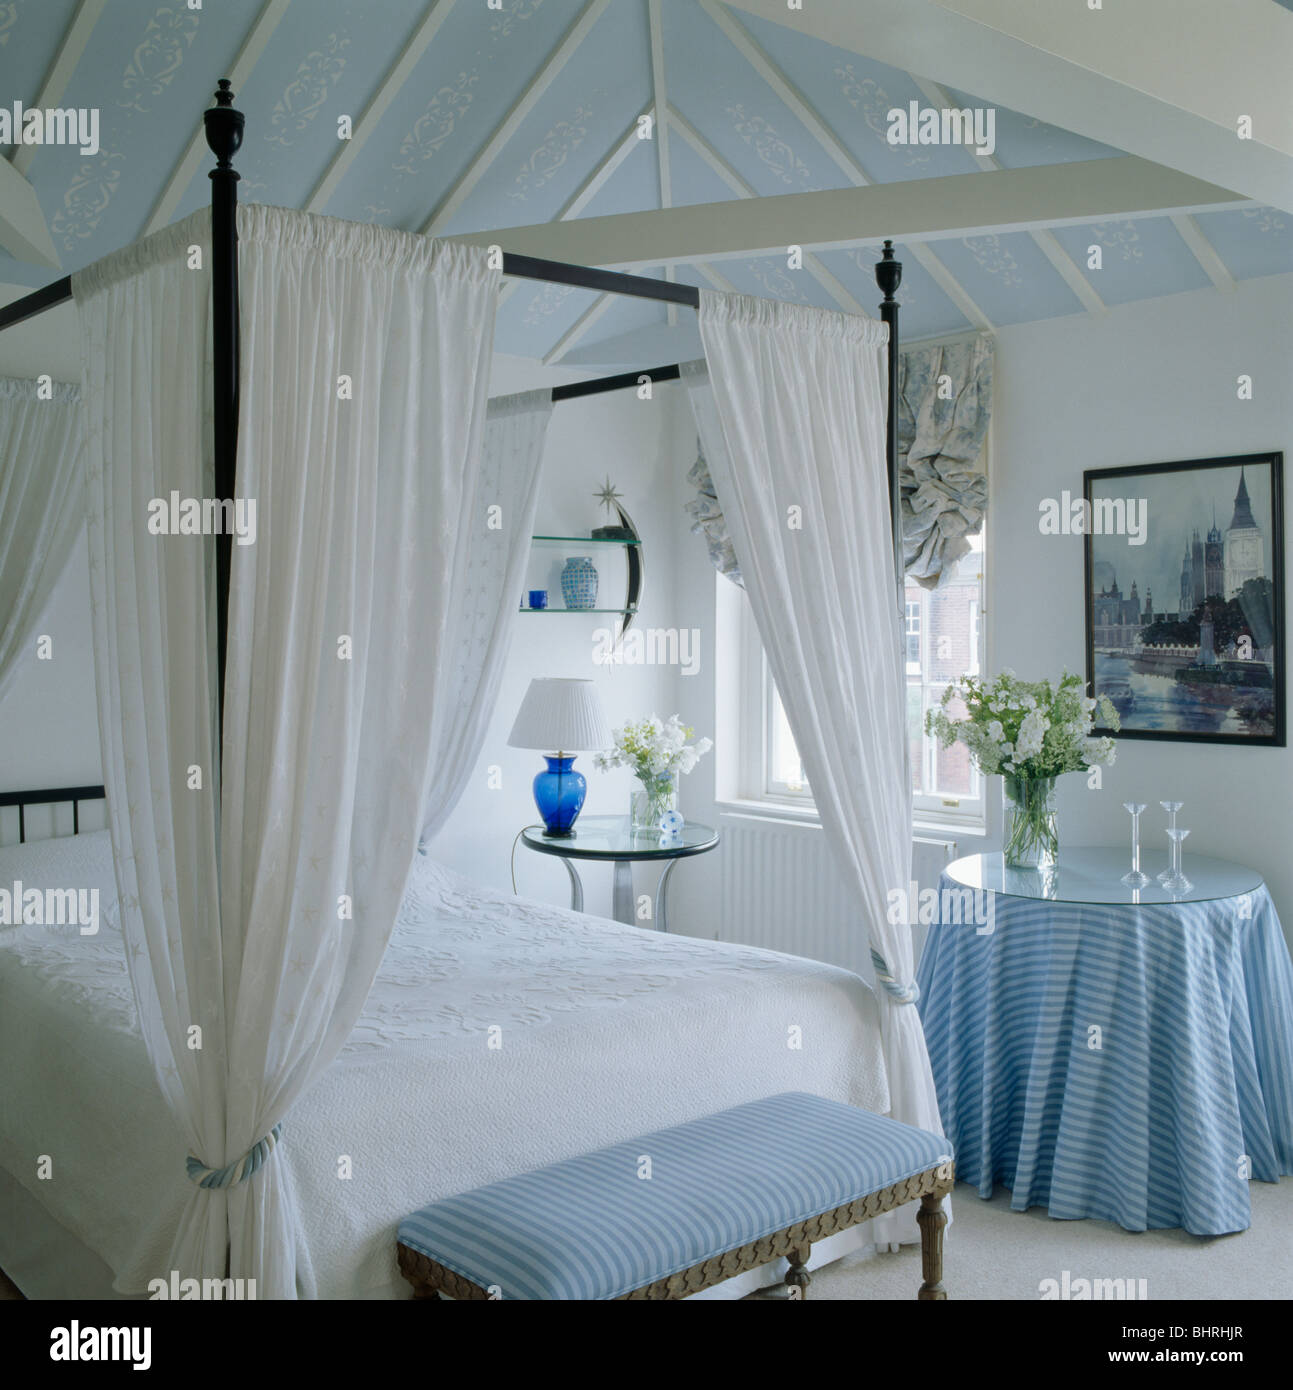 Simple Four Poster Bed With White Drapes In White Bedroom With Blue Stock Photo Royalty Free